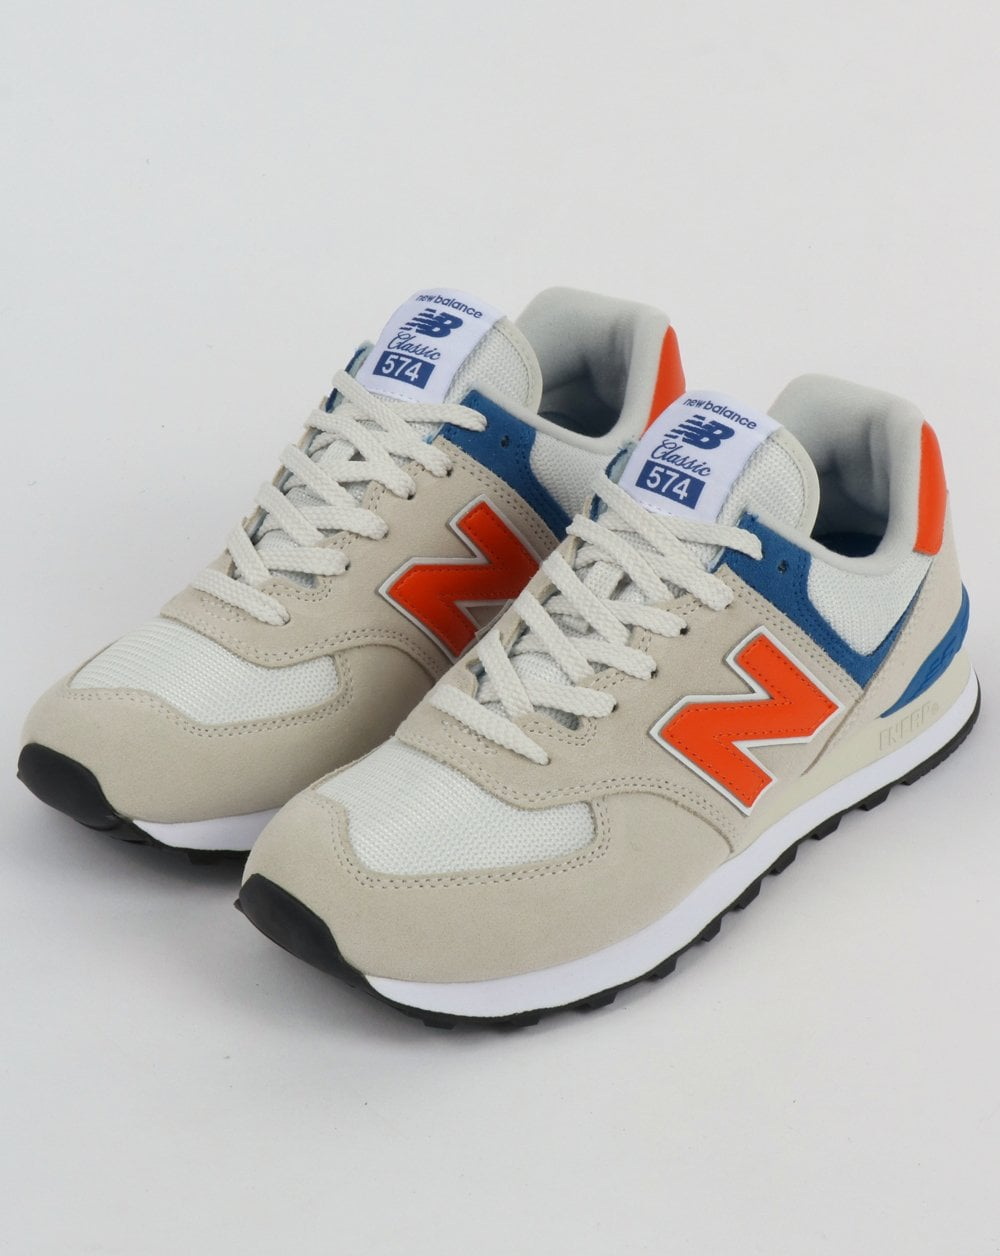 hot sale online af84c cf79d New Balance 574 Trainers White/Orange